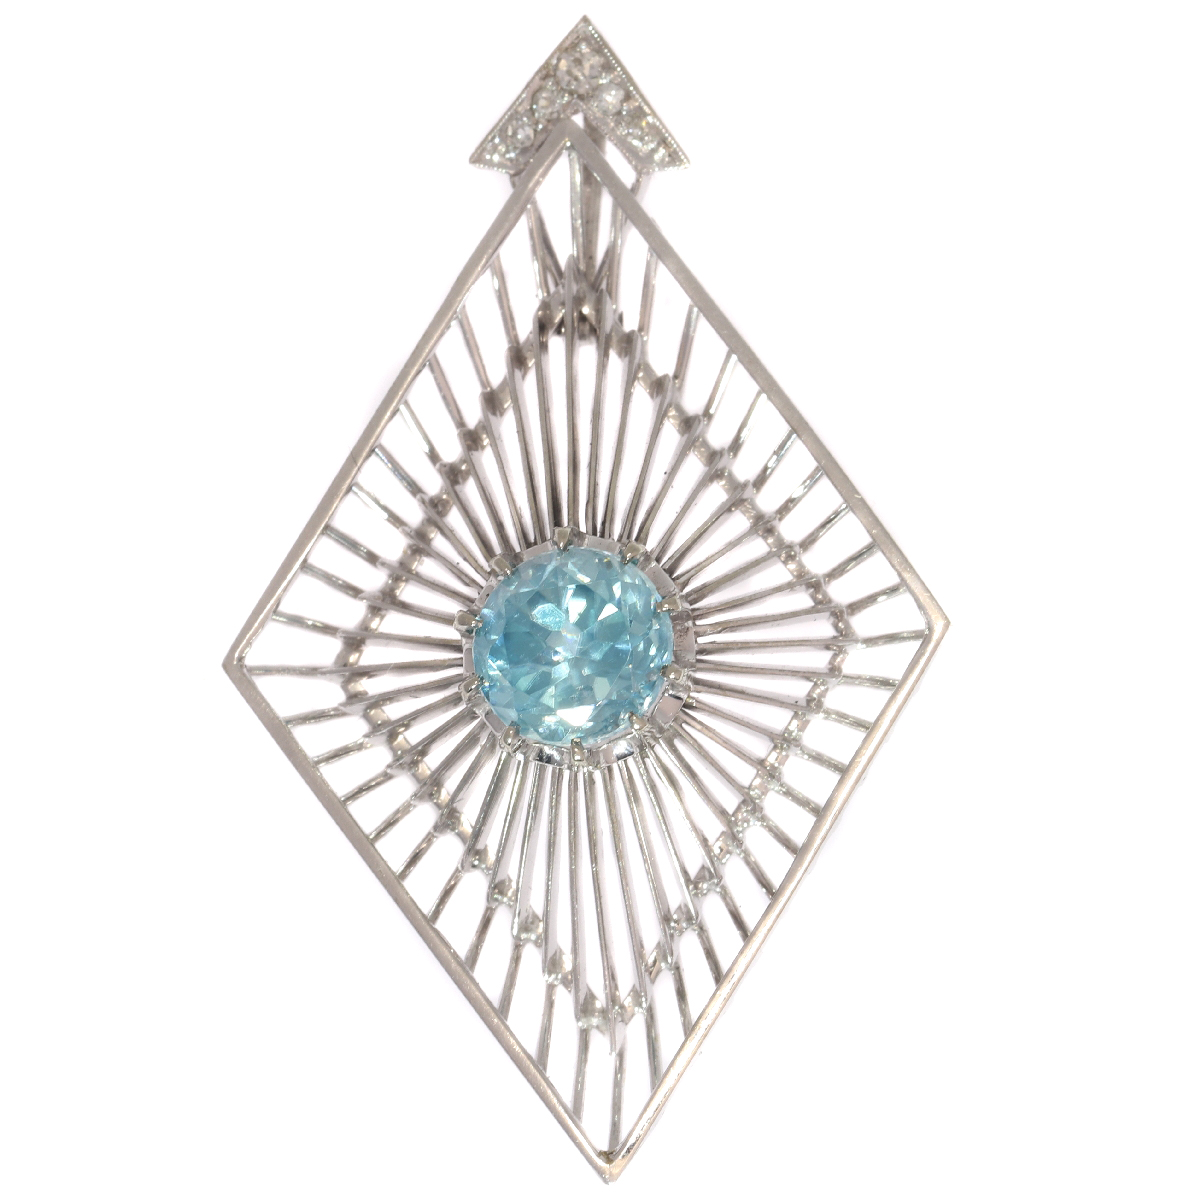 Artist Jewelry by Chris Steenbergen white gold pendant with diamond and starlite